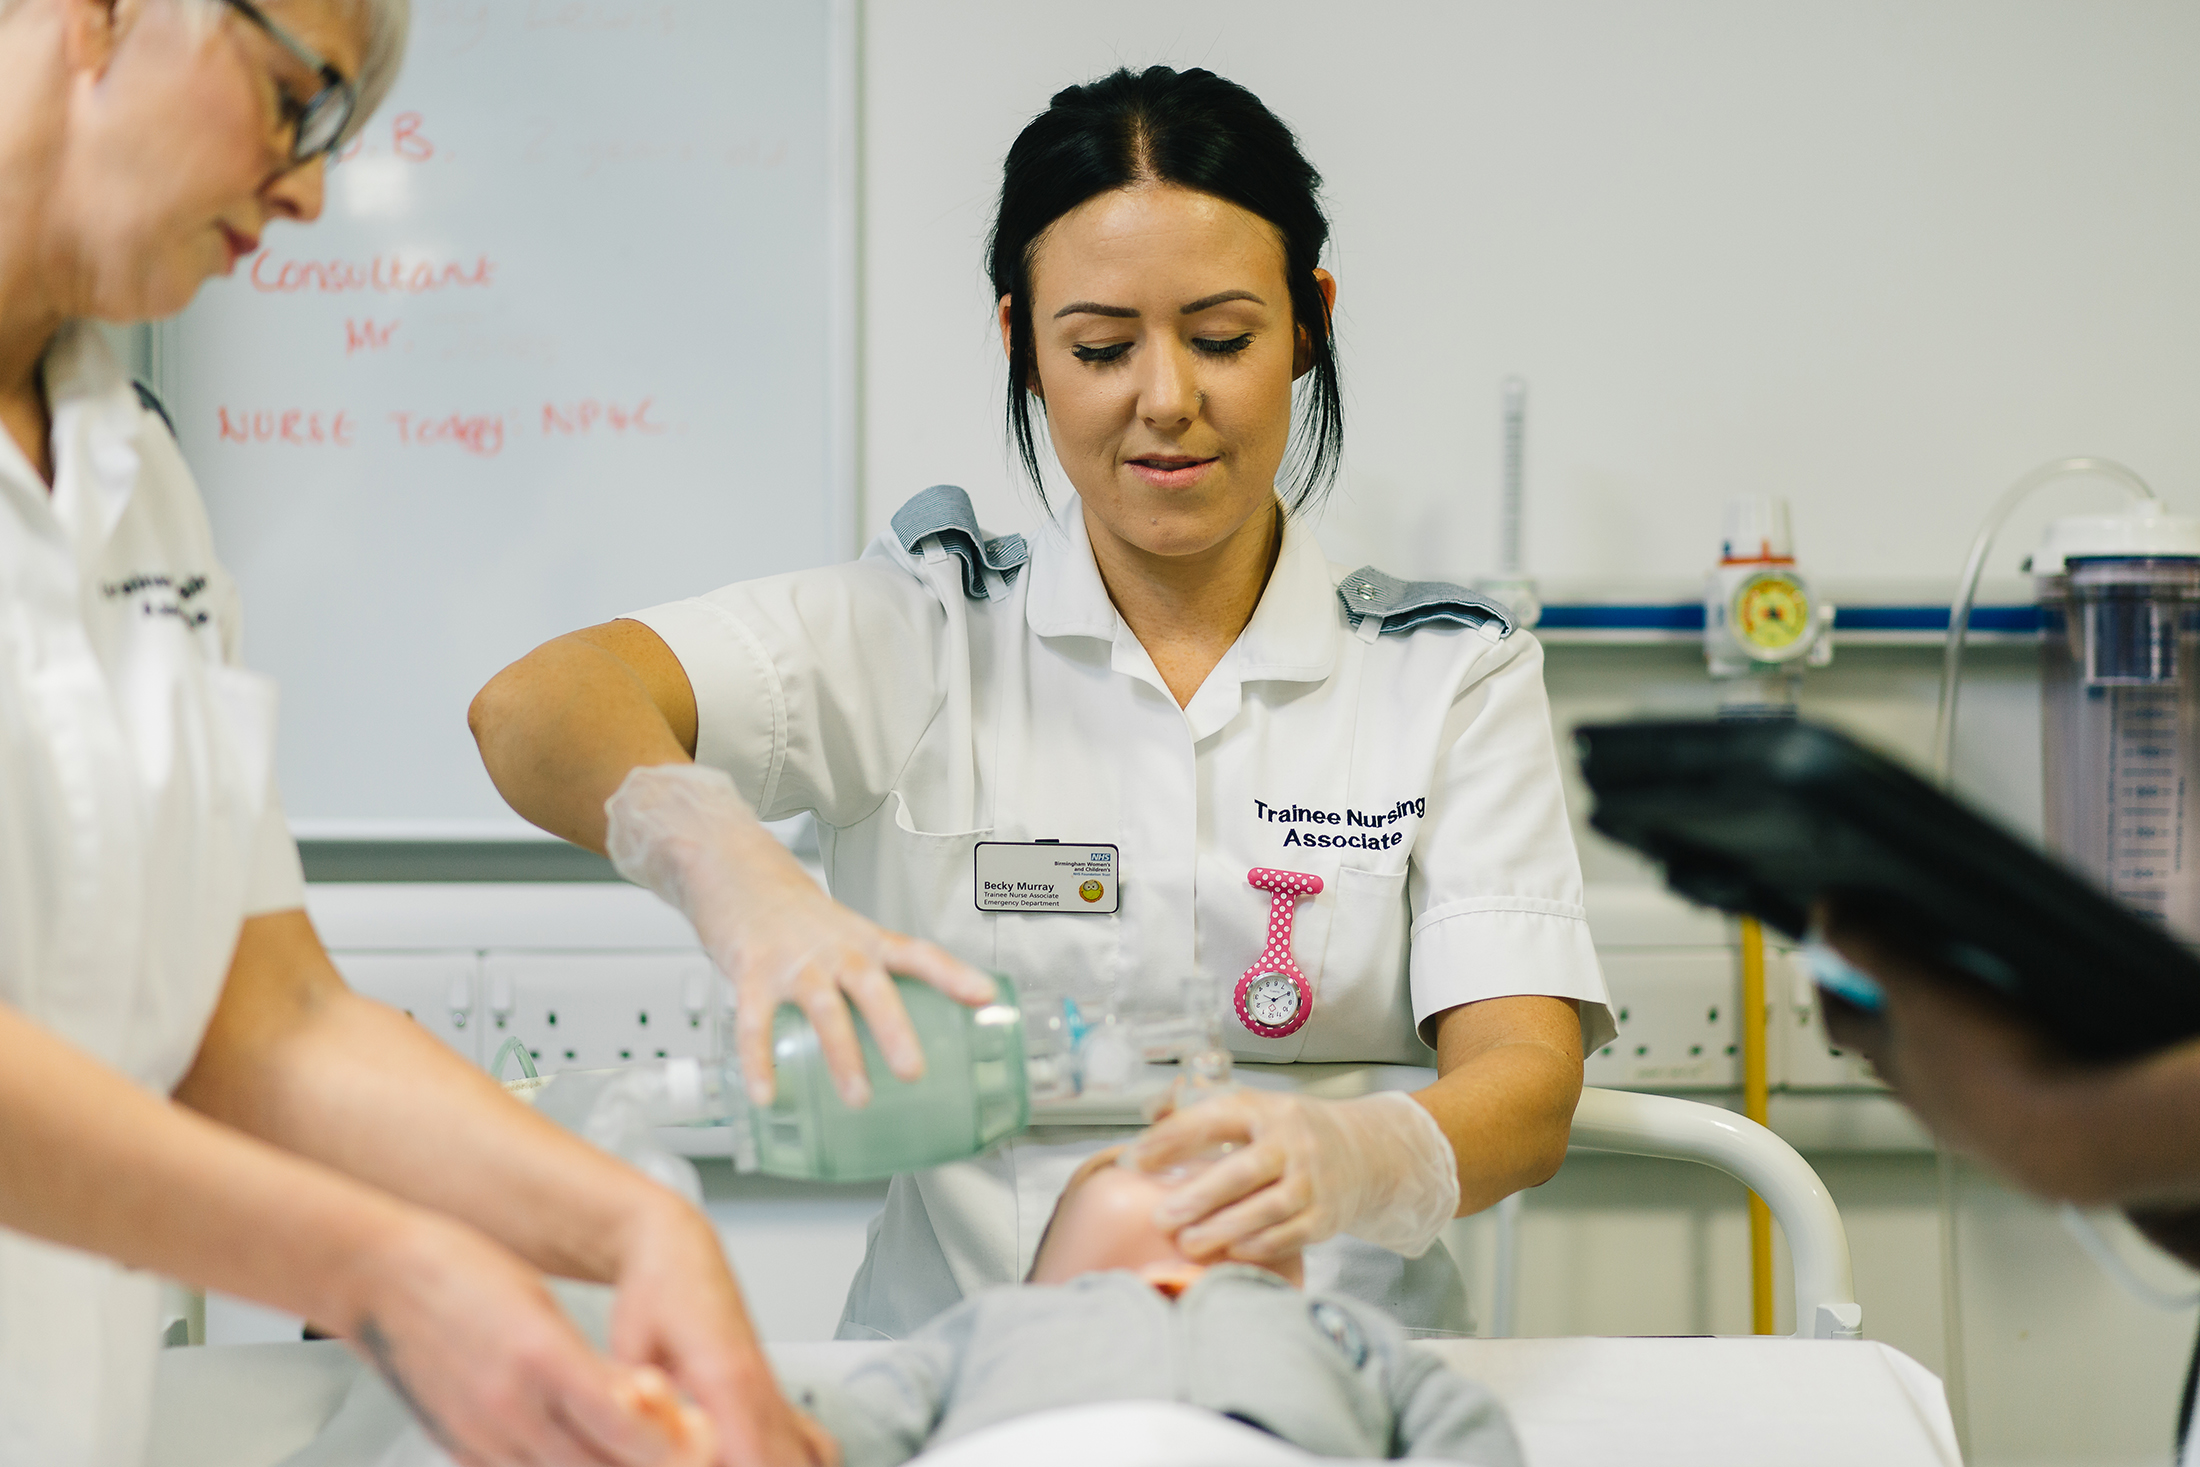 Nursing and Midwifery facilities - 15 skills nursing associates